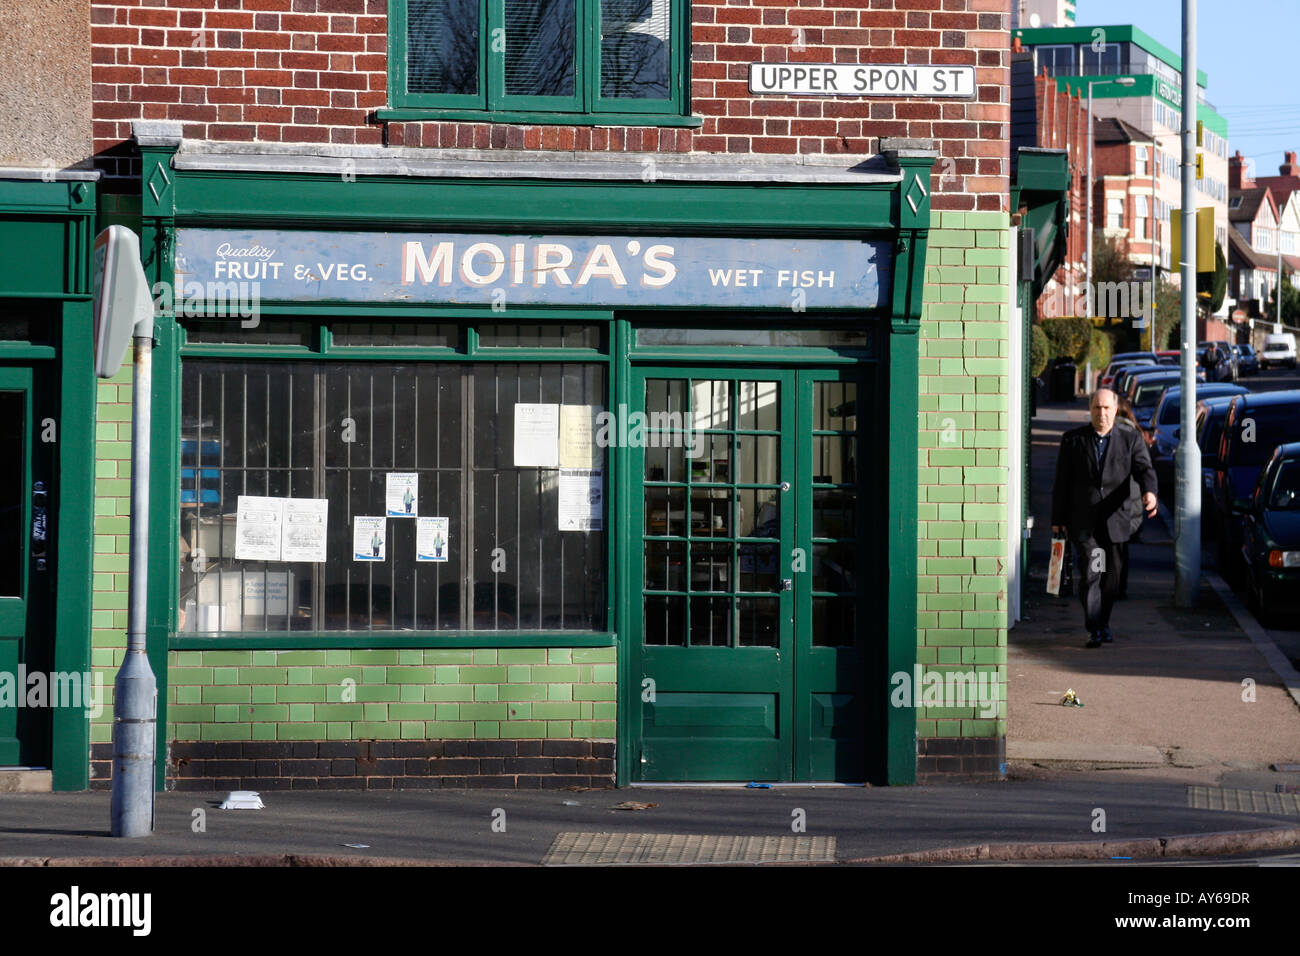 Former Old Moira's 'wet fish' and vegetable shop in Upper Spon Street in Coventry, England - Stock Image